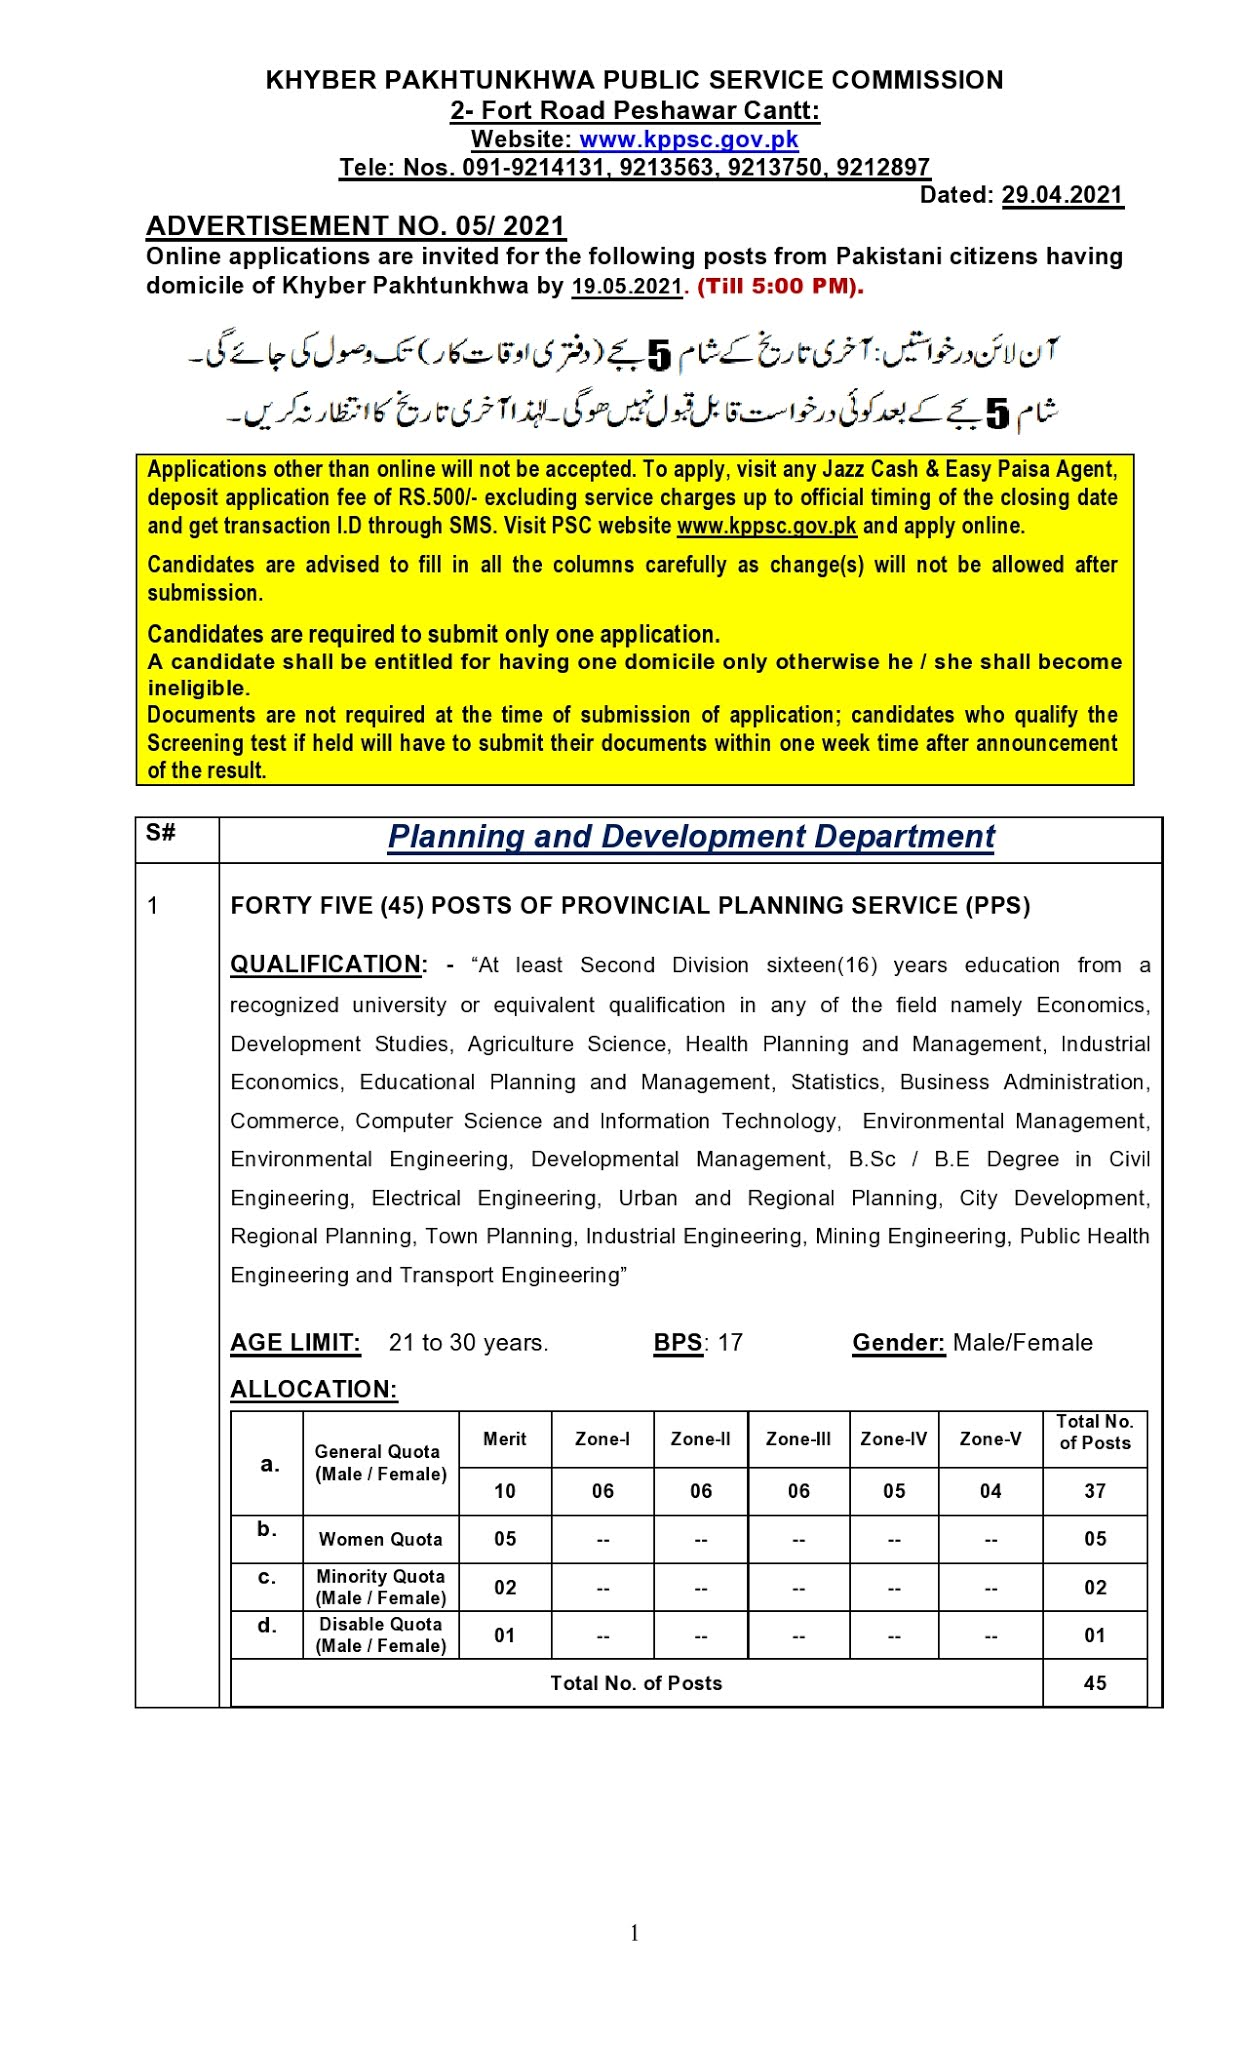 KPPSC Provincial Planning Service (PPS) Jobs 2021 Apply Online